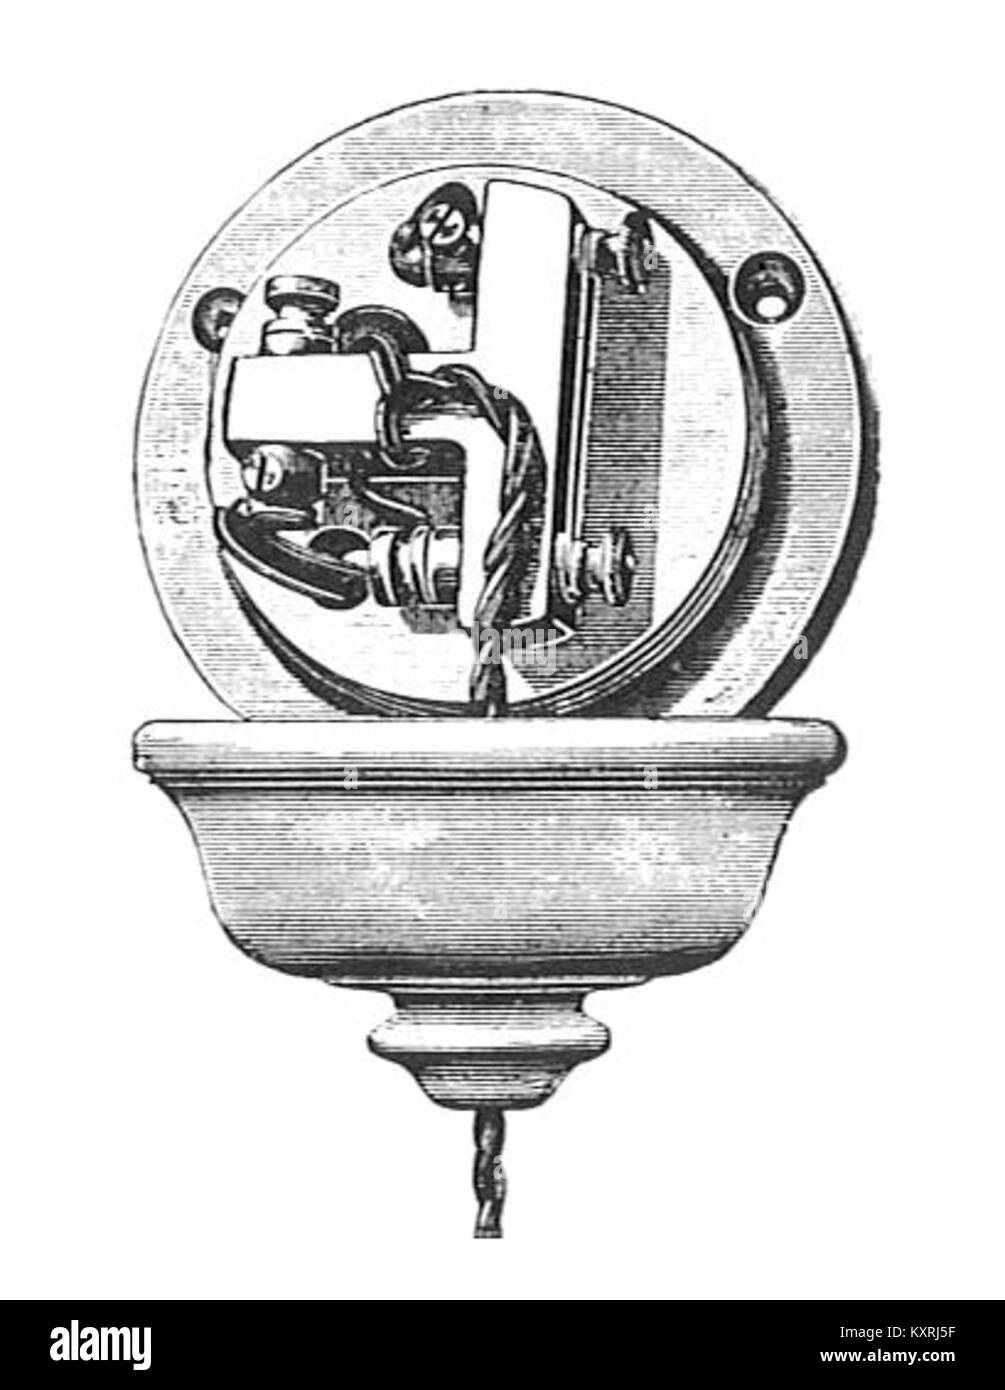 hight resolution of ceiling rose with fuse 1890 forty years of electrical progress stock